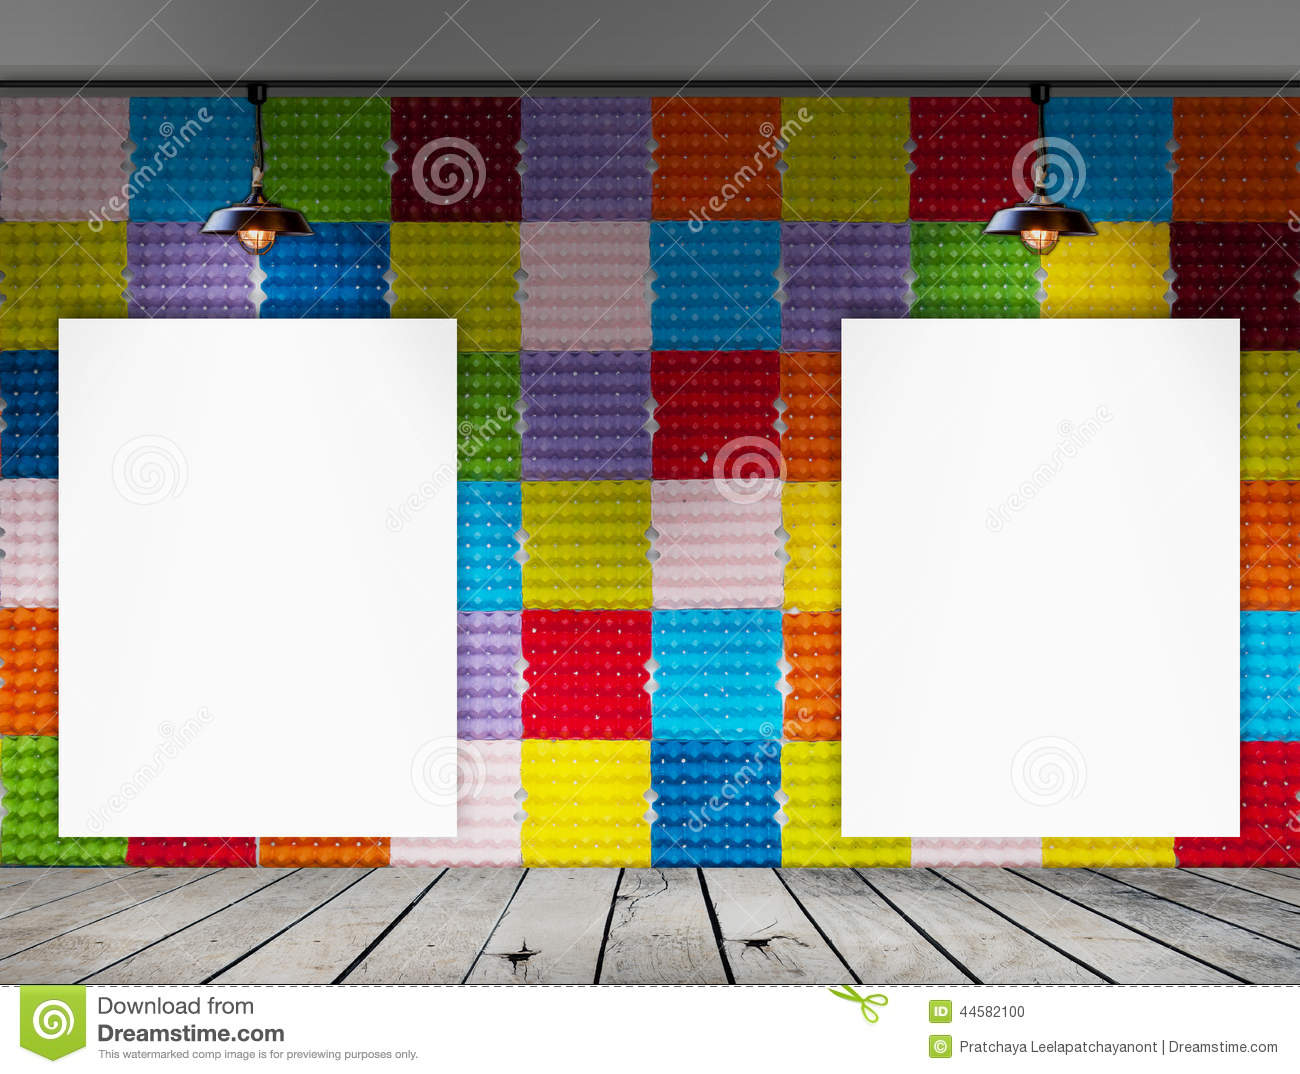 Blank frame on colorful paper egg tray wall and wood floor for Egg tray wall hanging